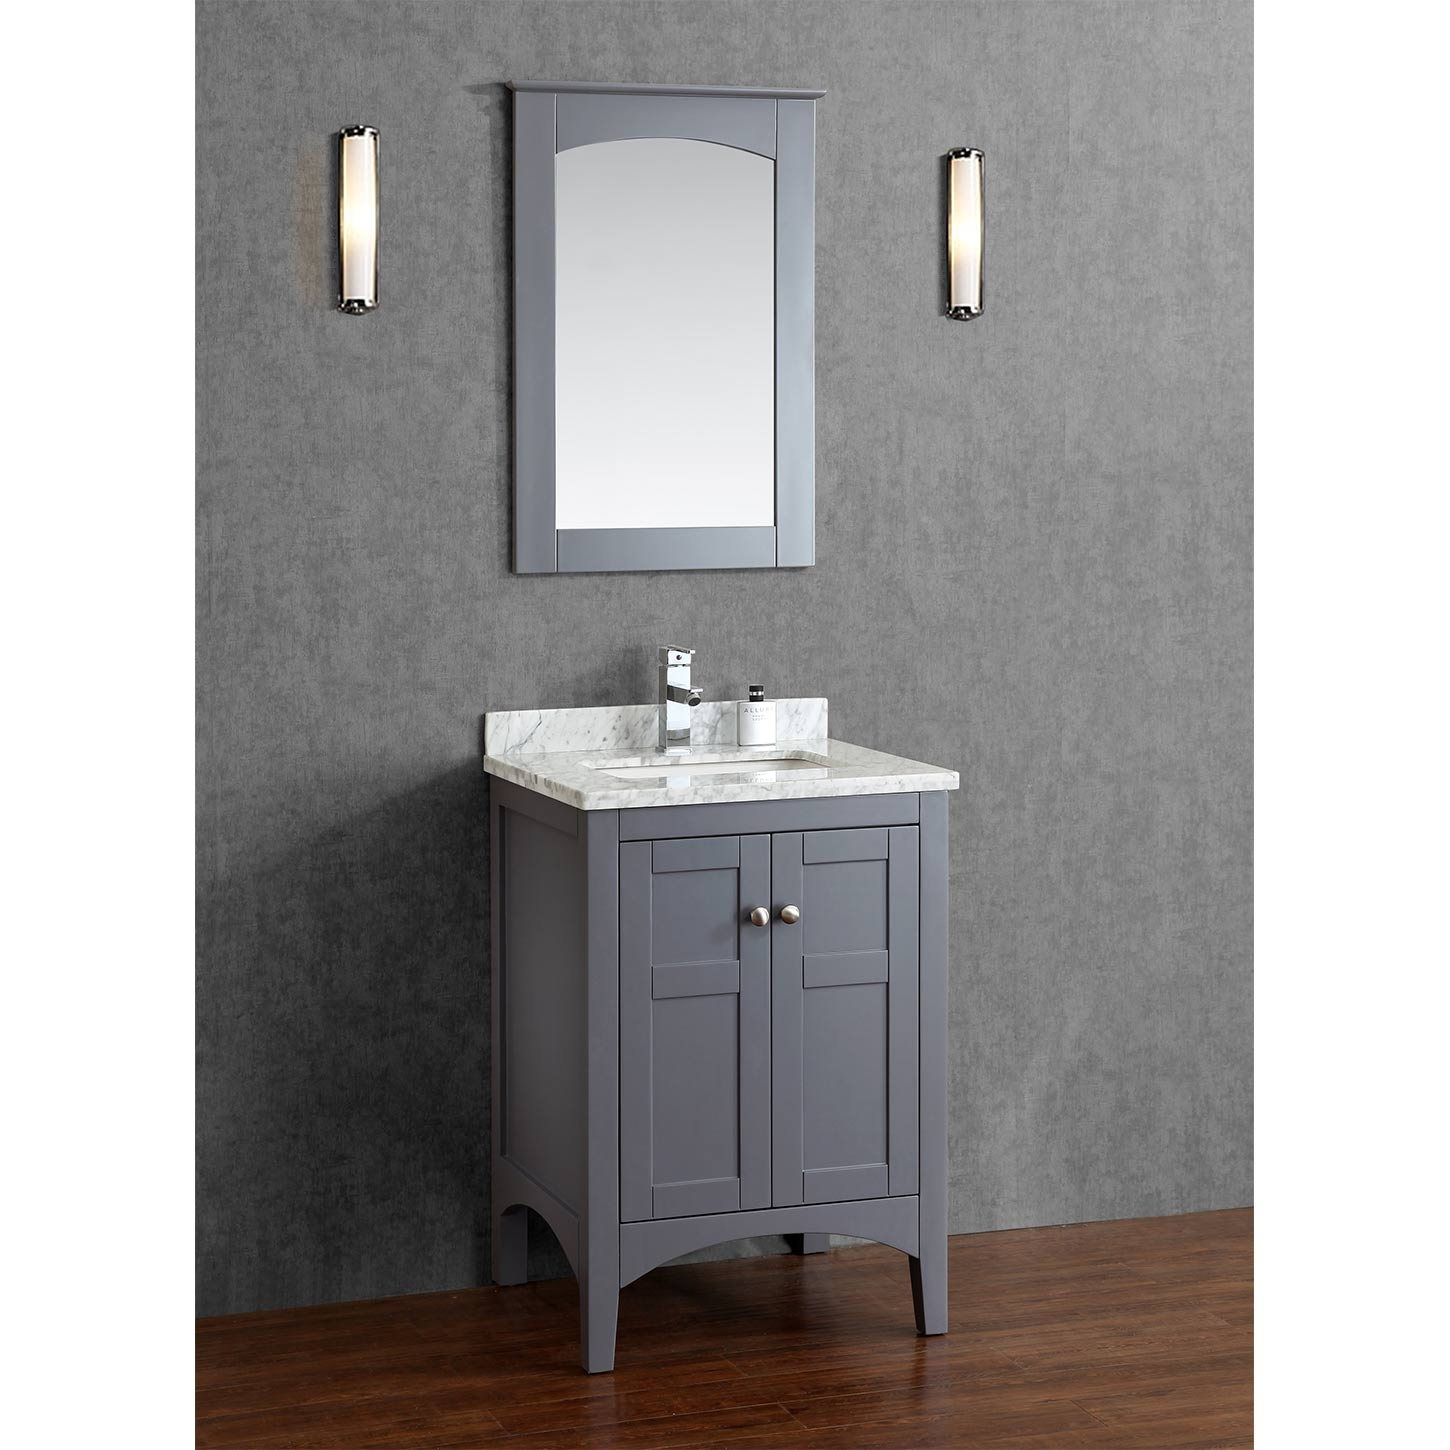 Bathroom Vanities Less Than 30 Inches Wide